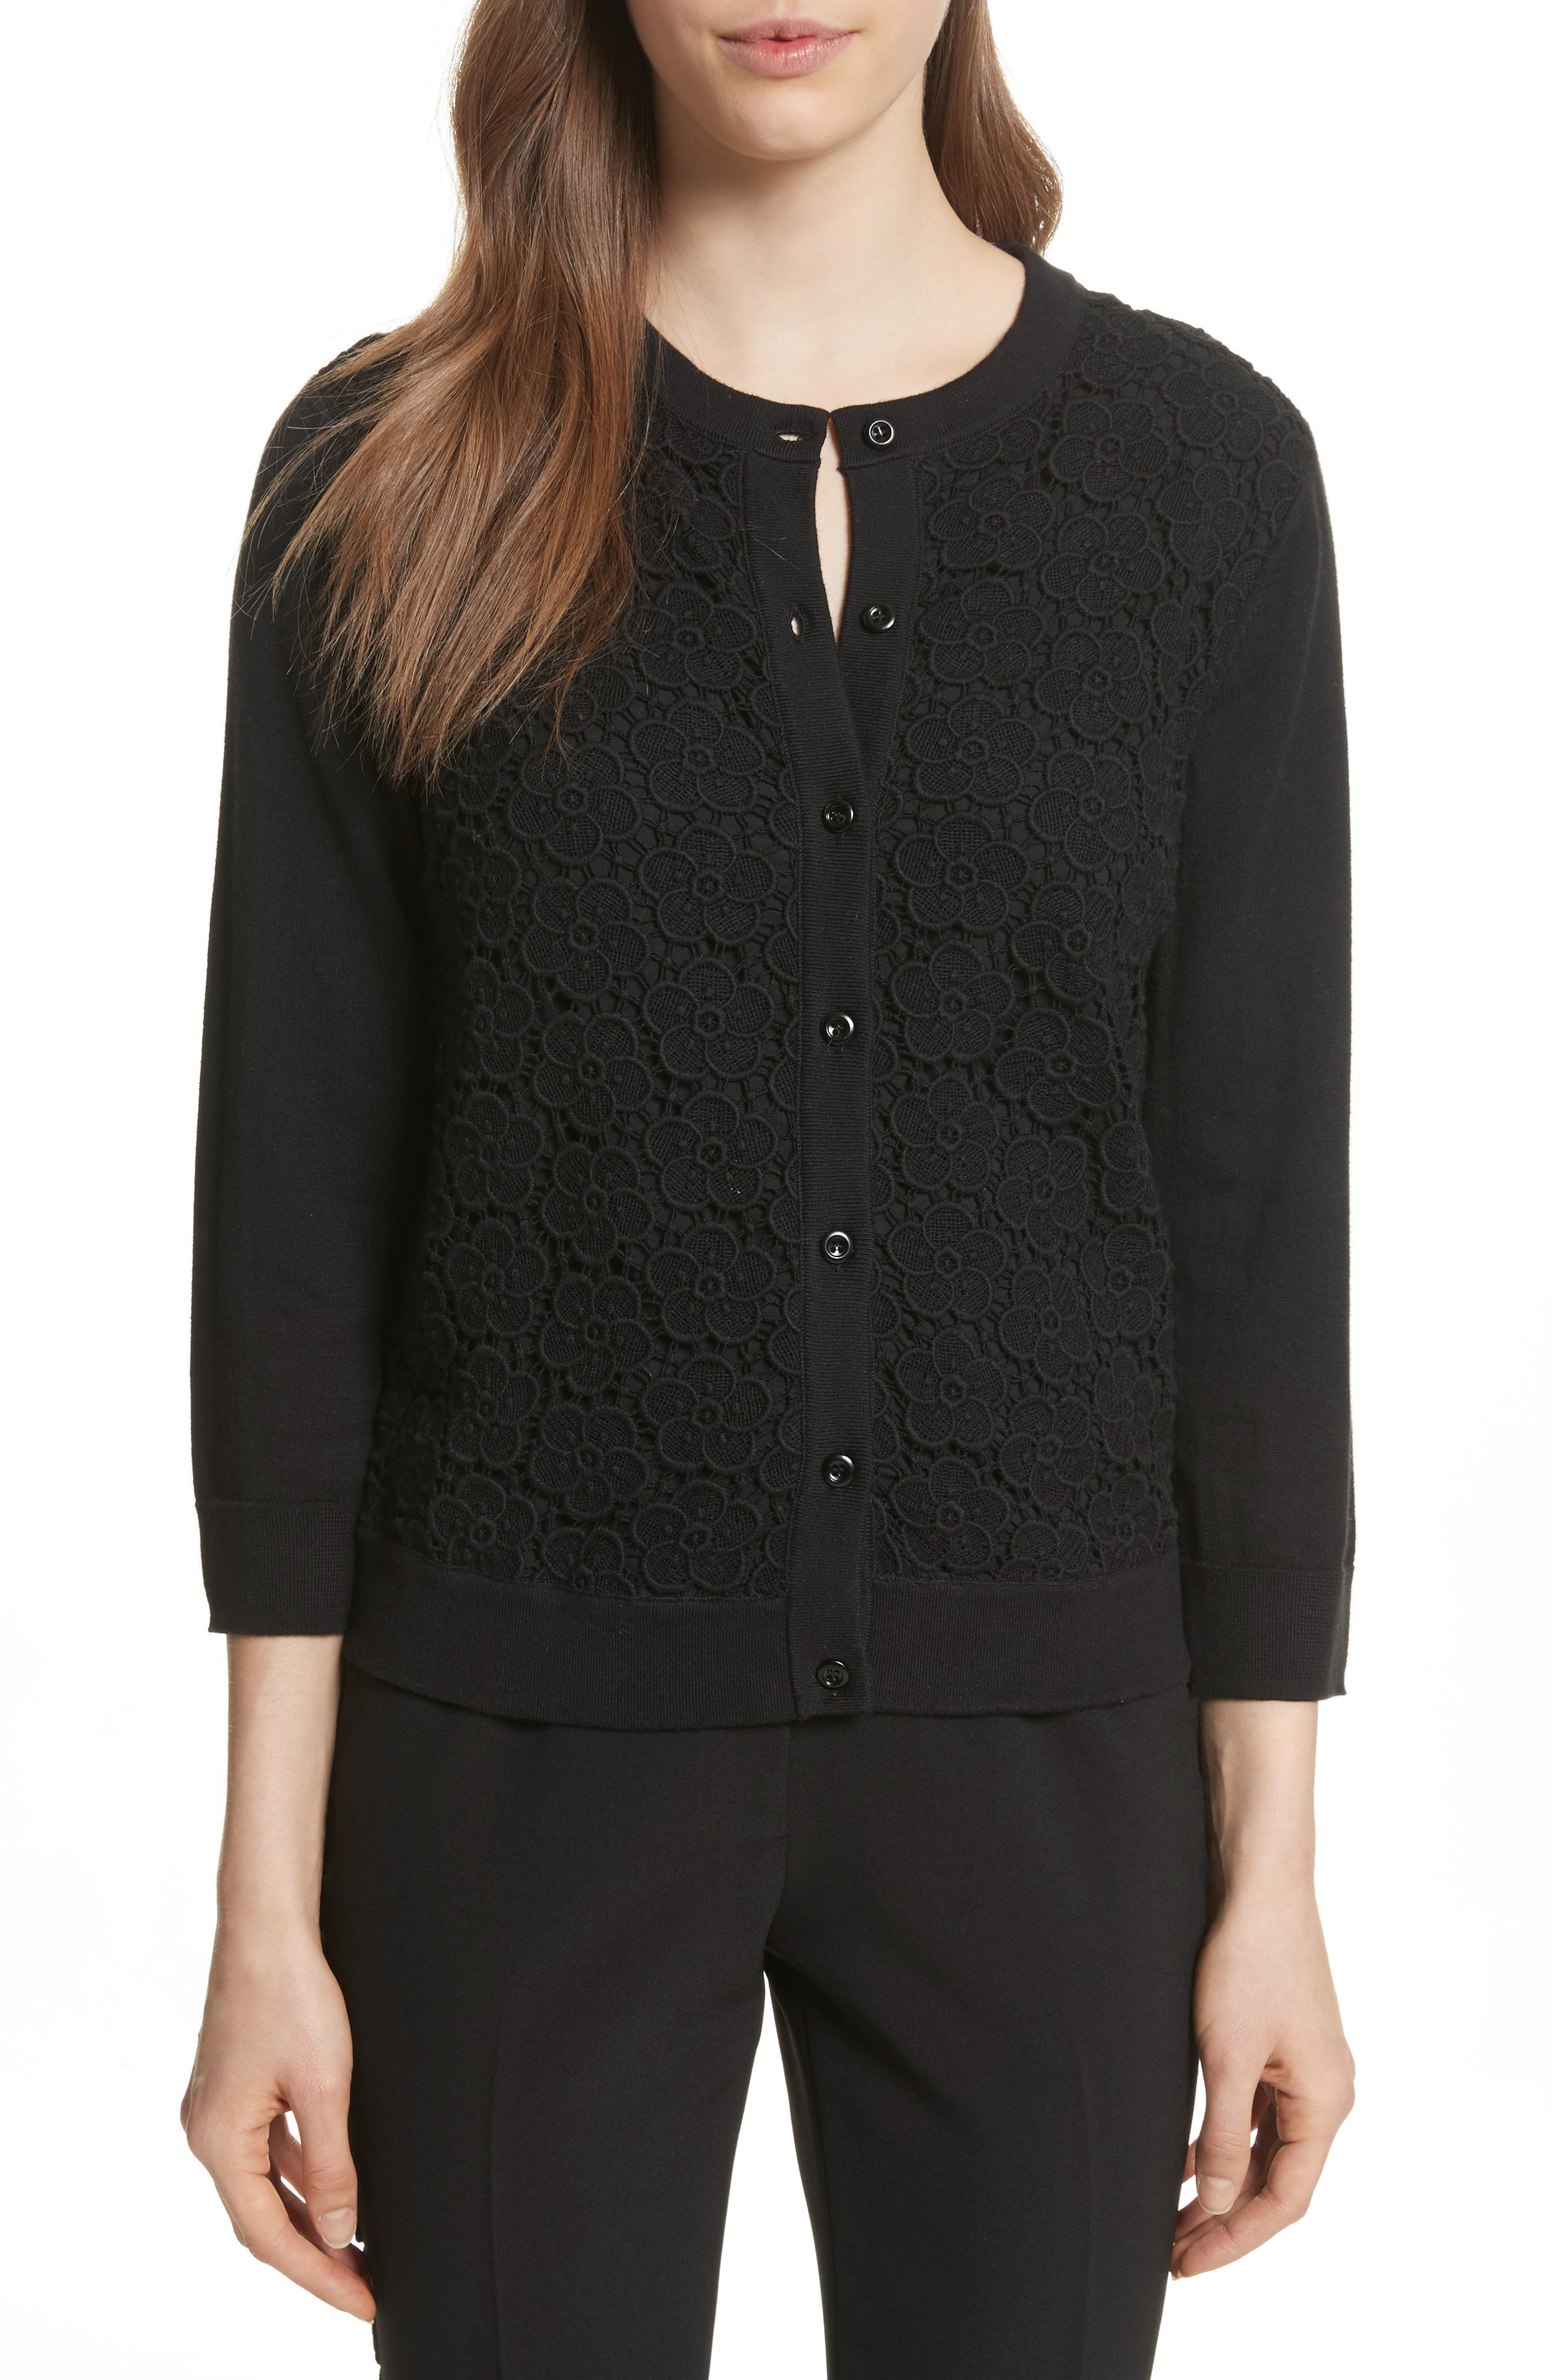 Alternate Image 1 Selected - kate spade new york bloom floral lace cardigan